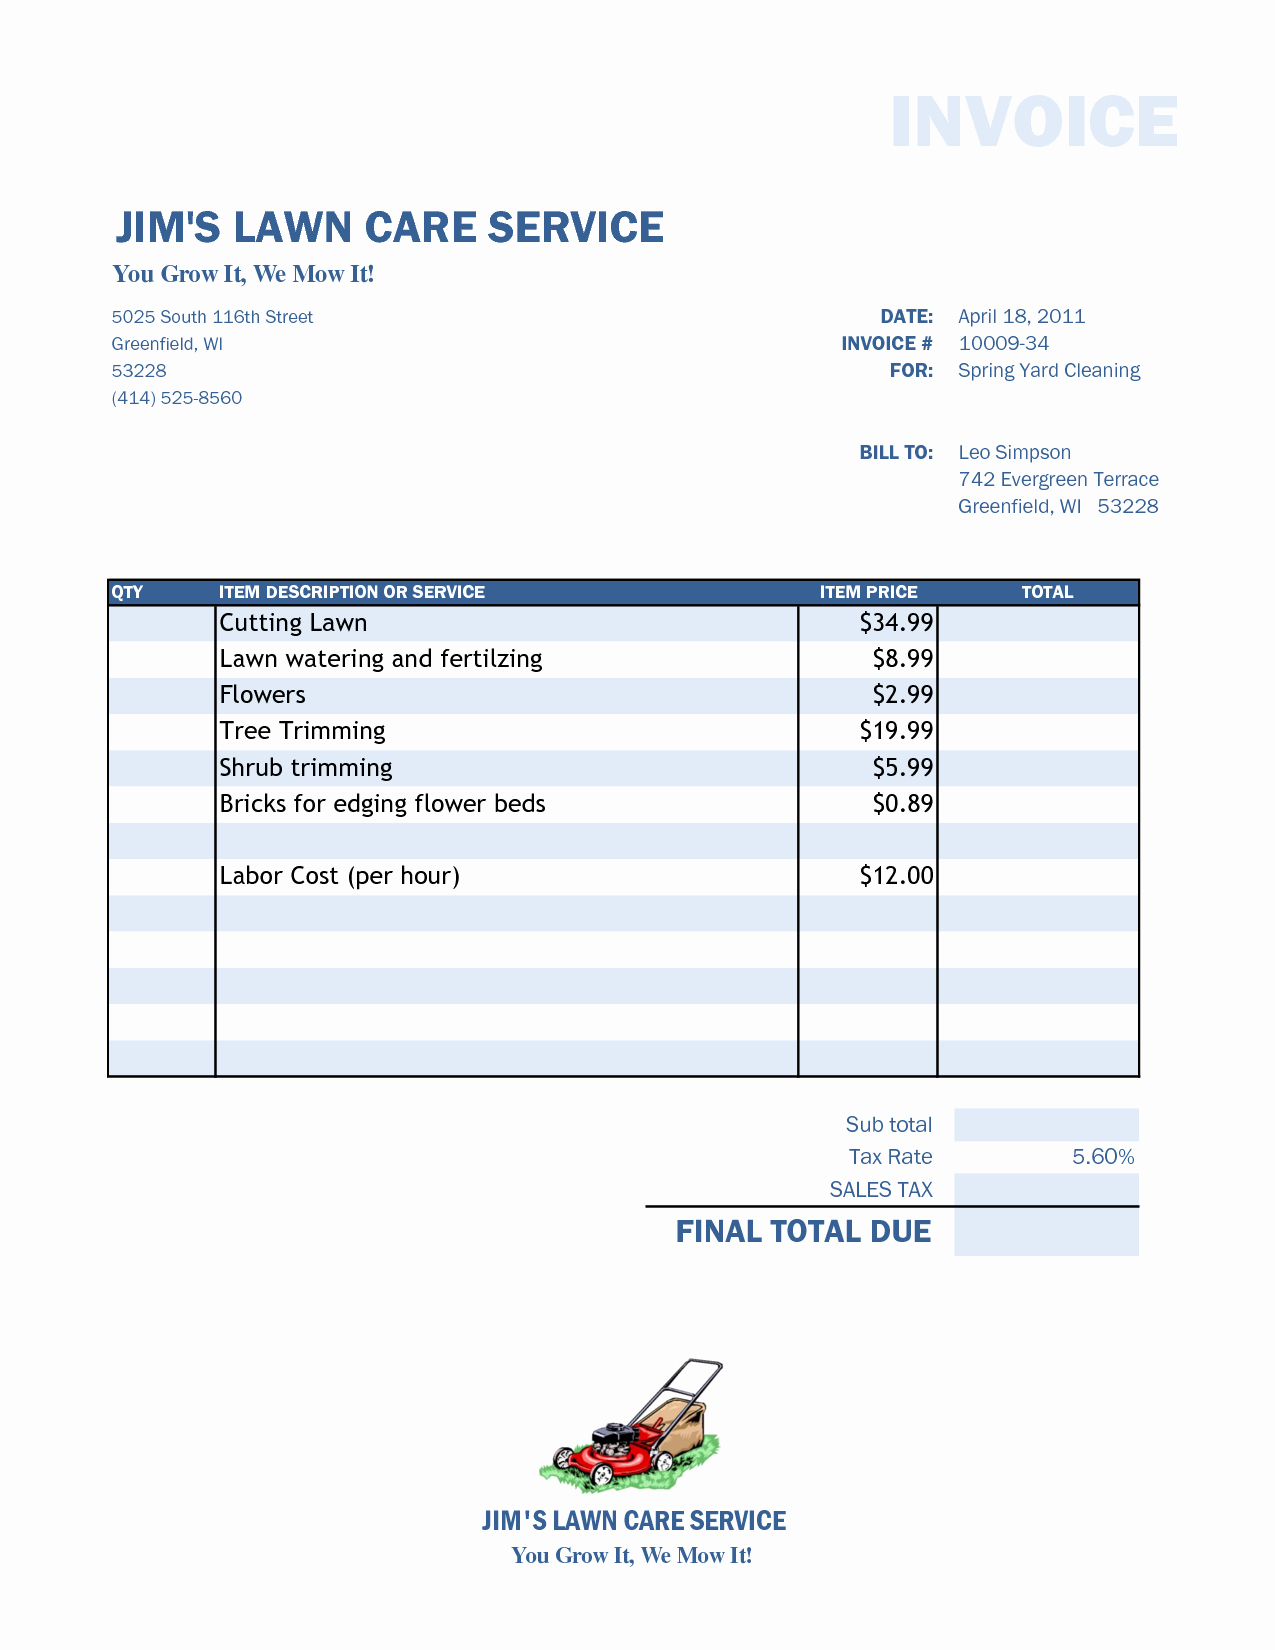 Landscaping Invoice Template Free Beautiful Lawn Care Invoice Template Pdf Lawn Care Invoice Template